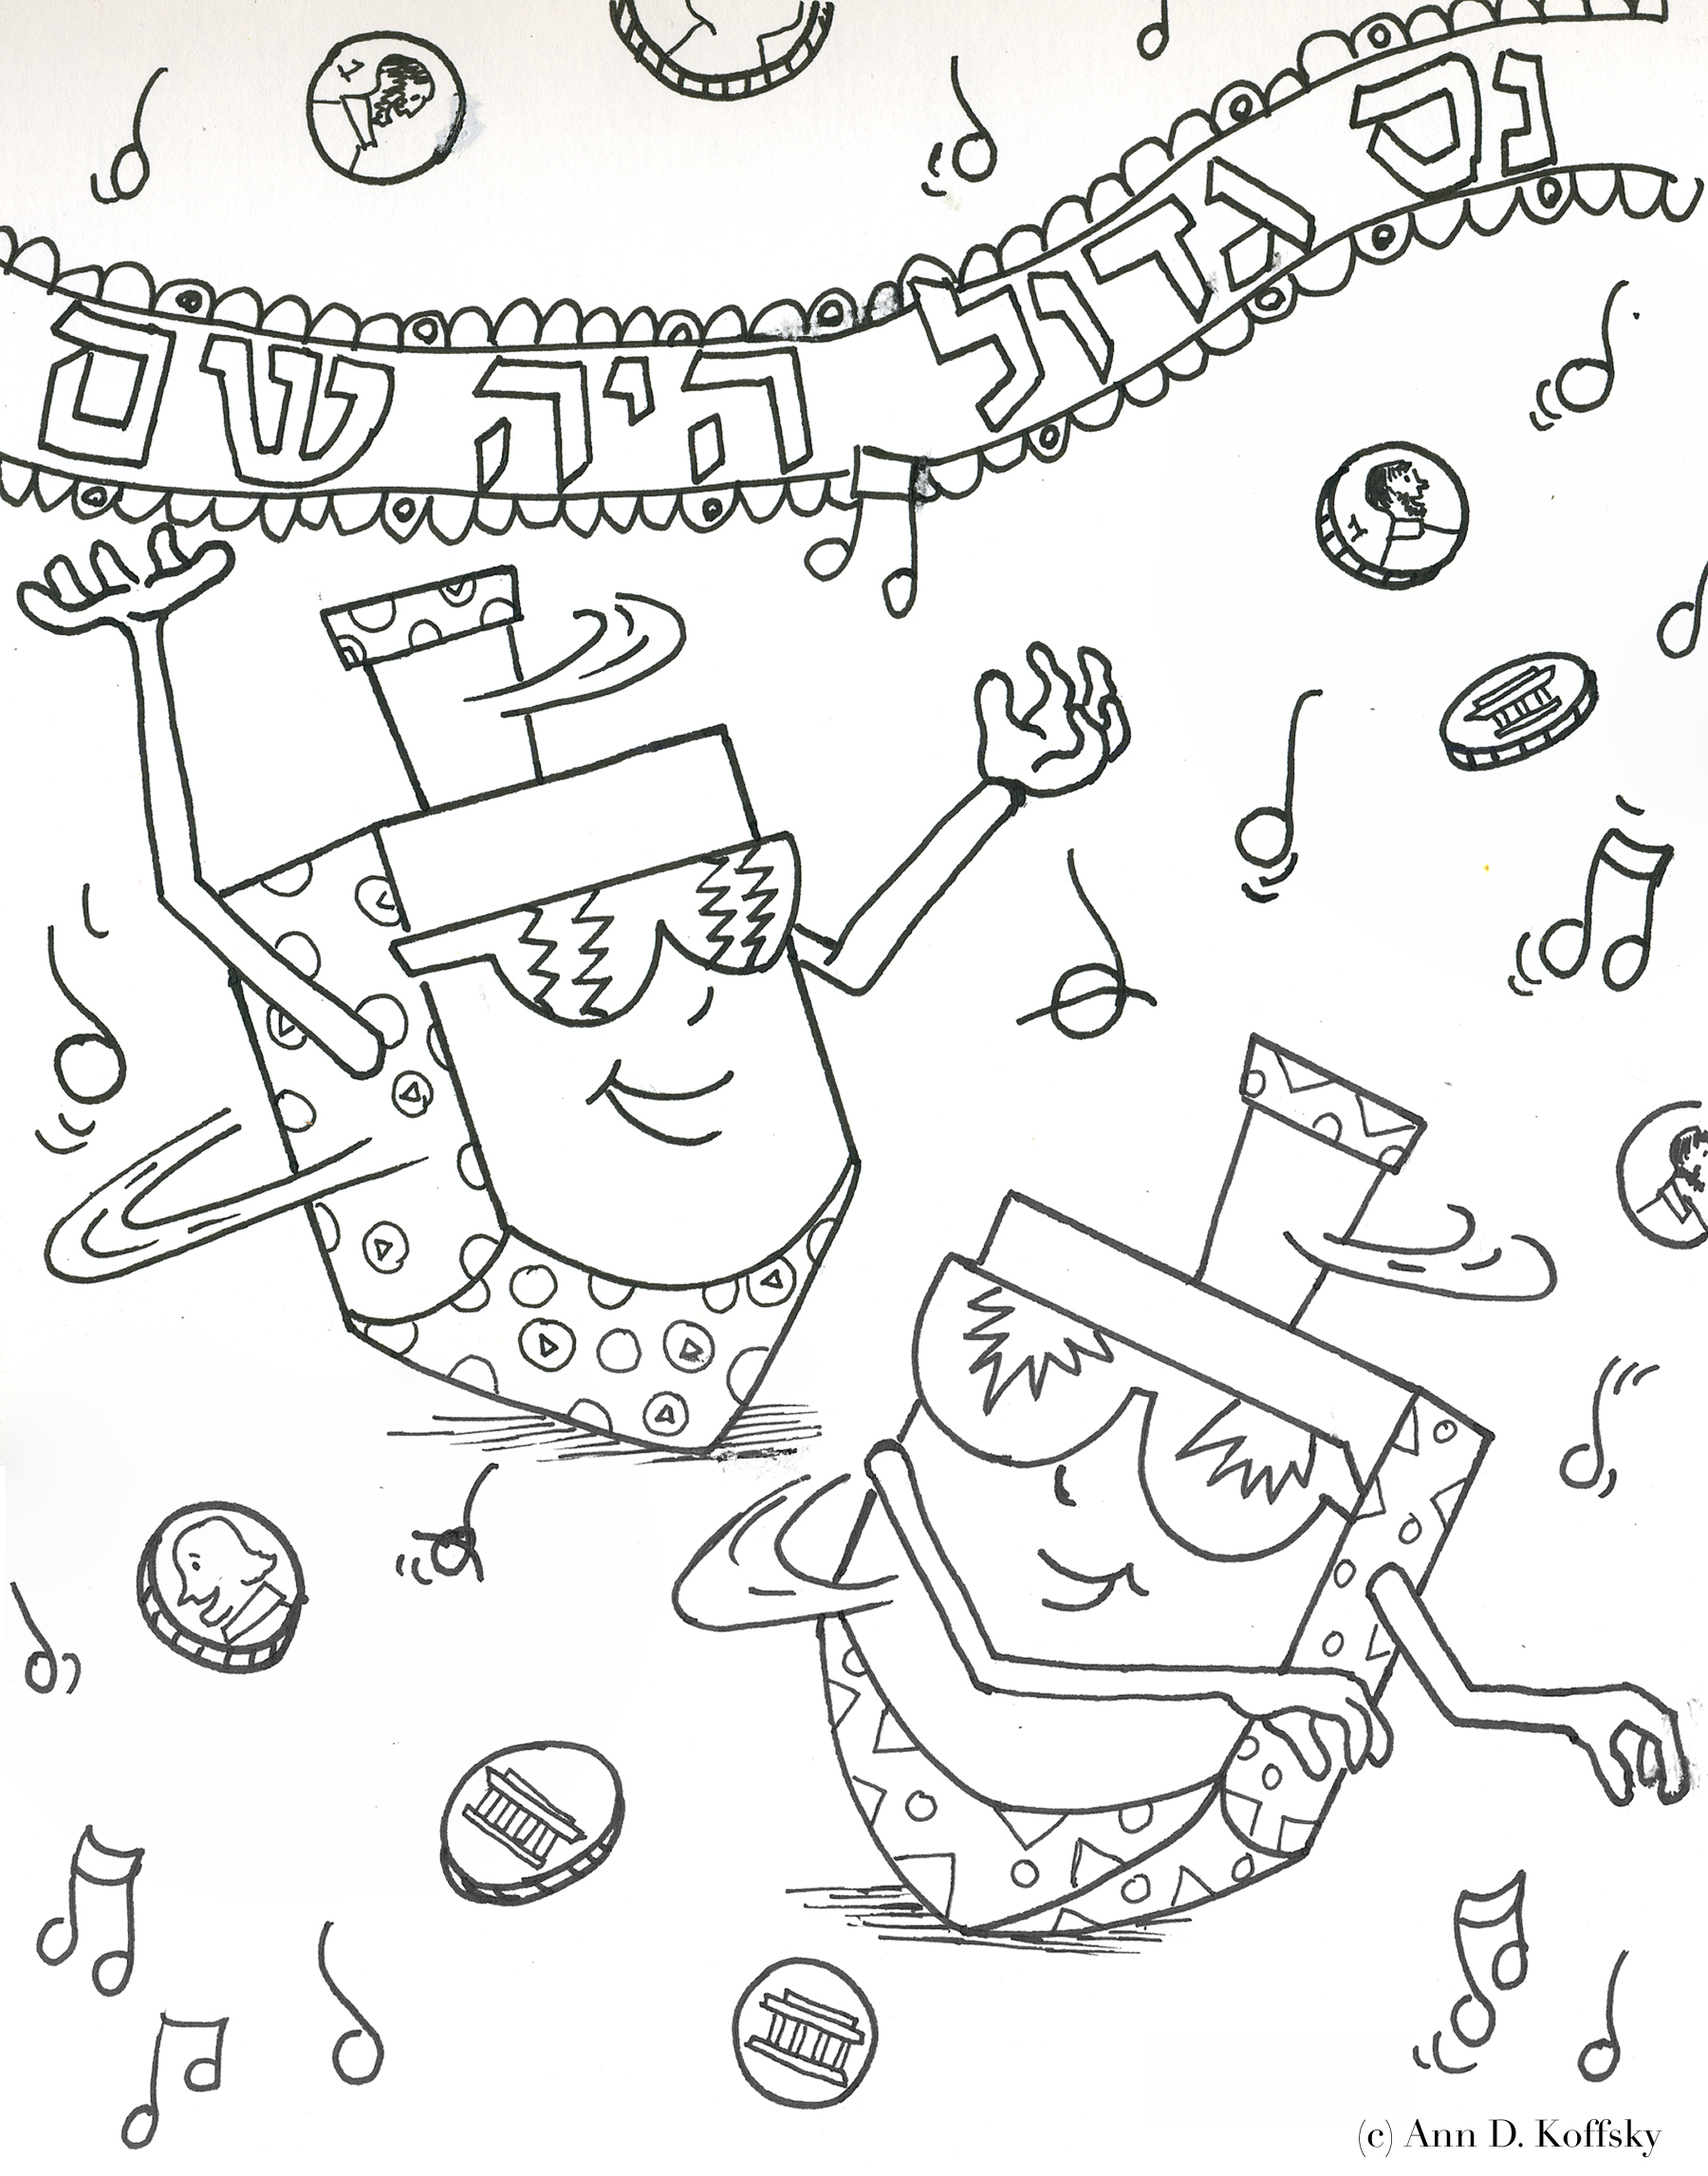 hanakah coloring pages - photo#14